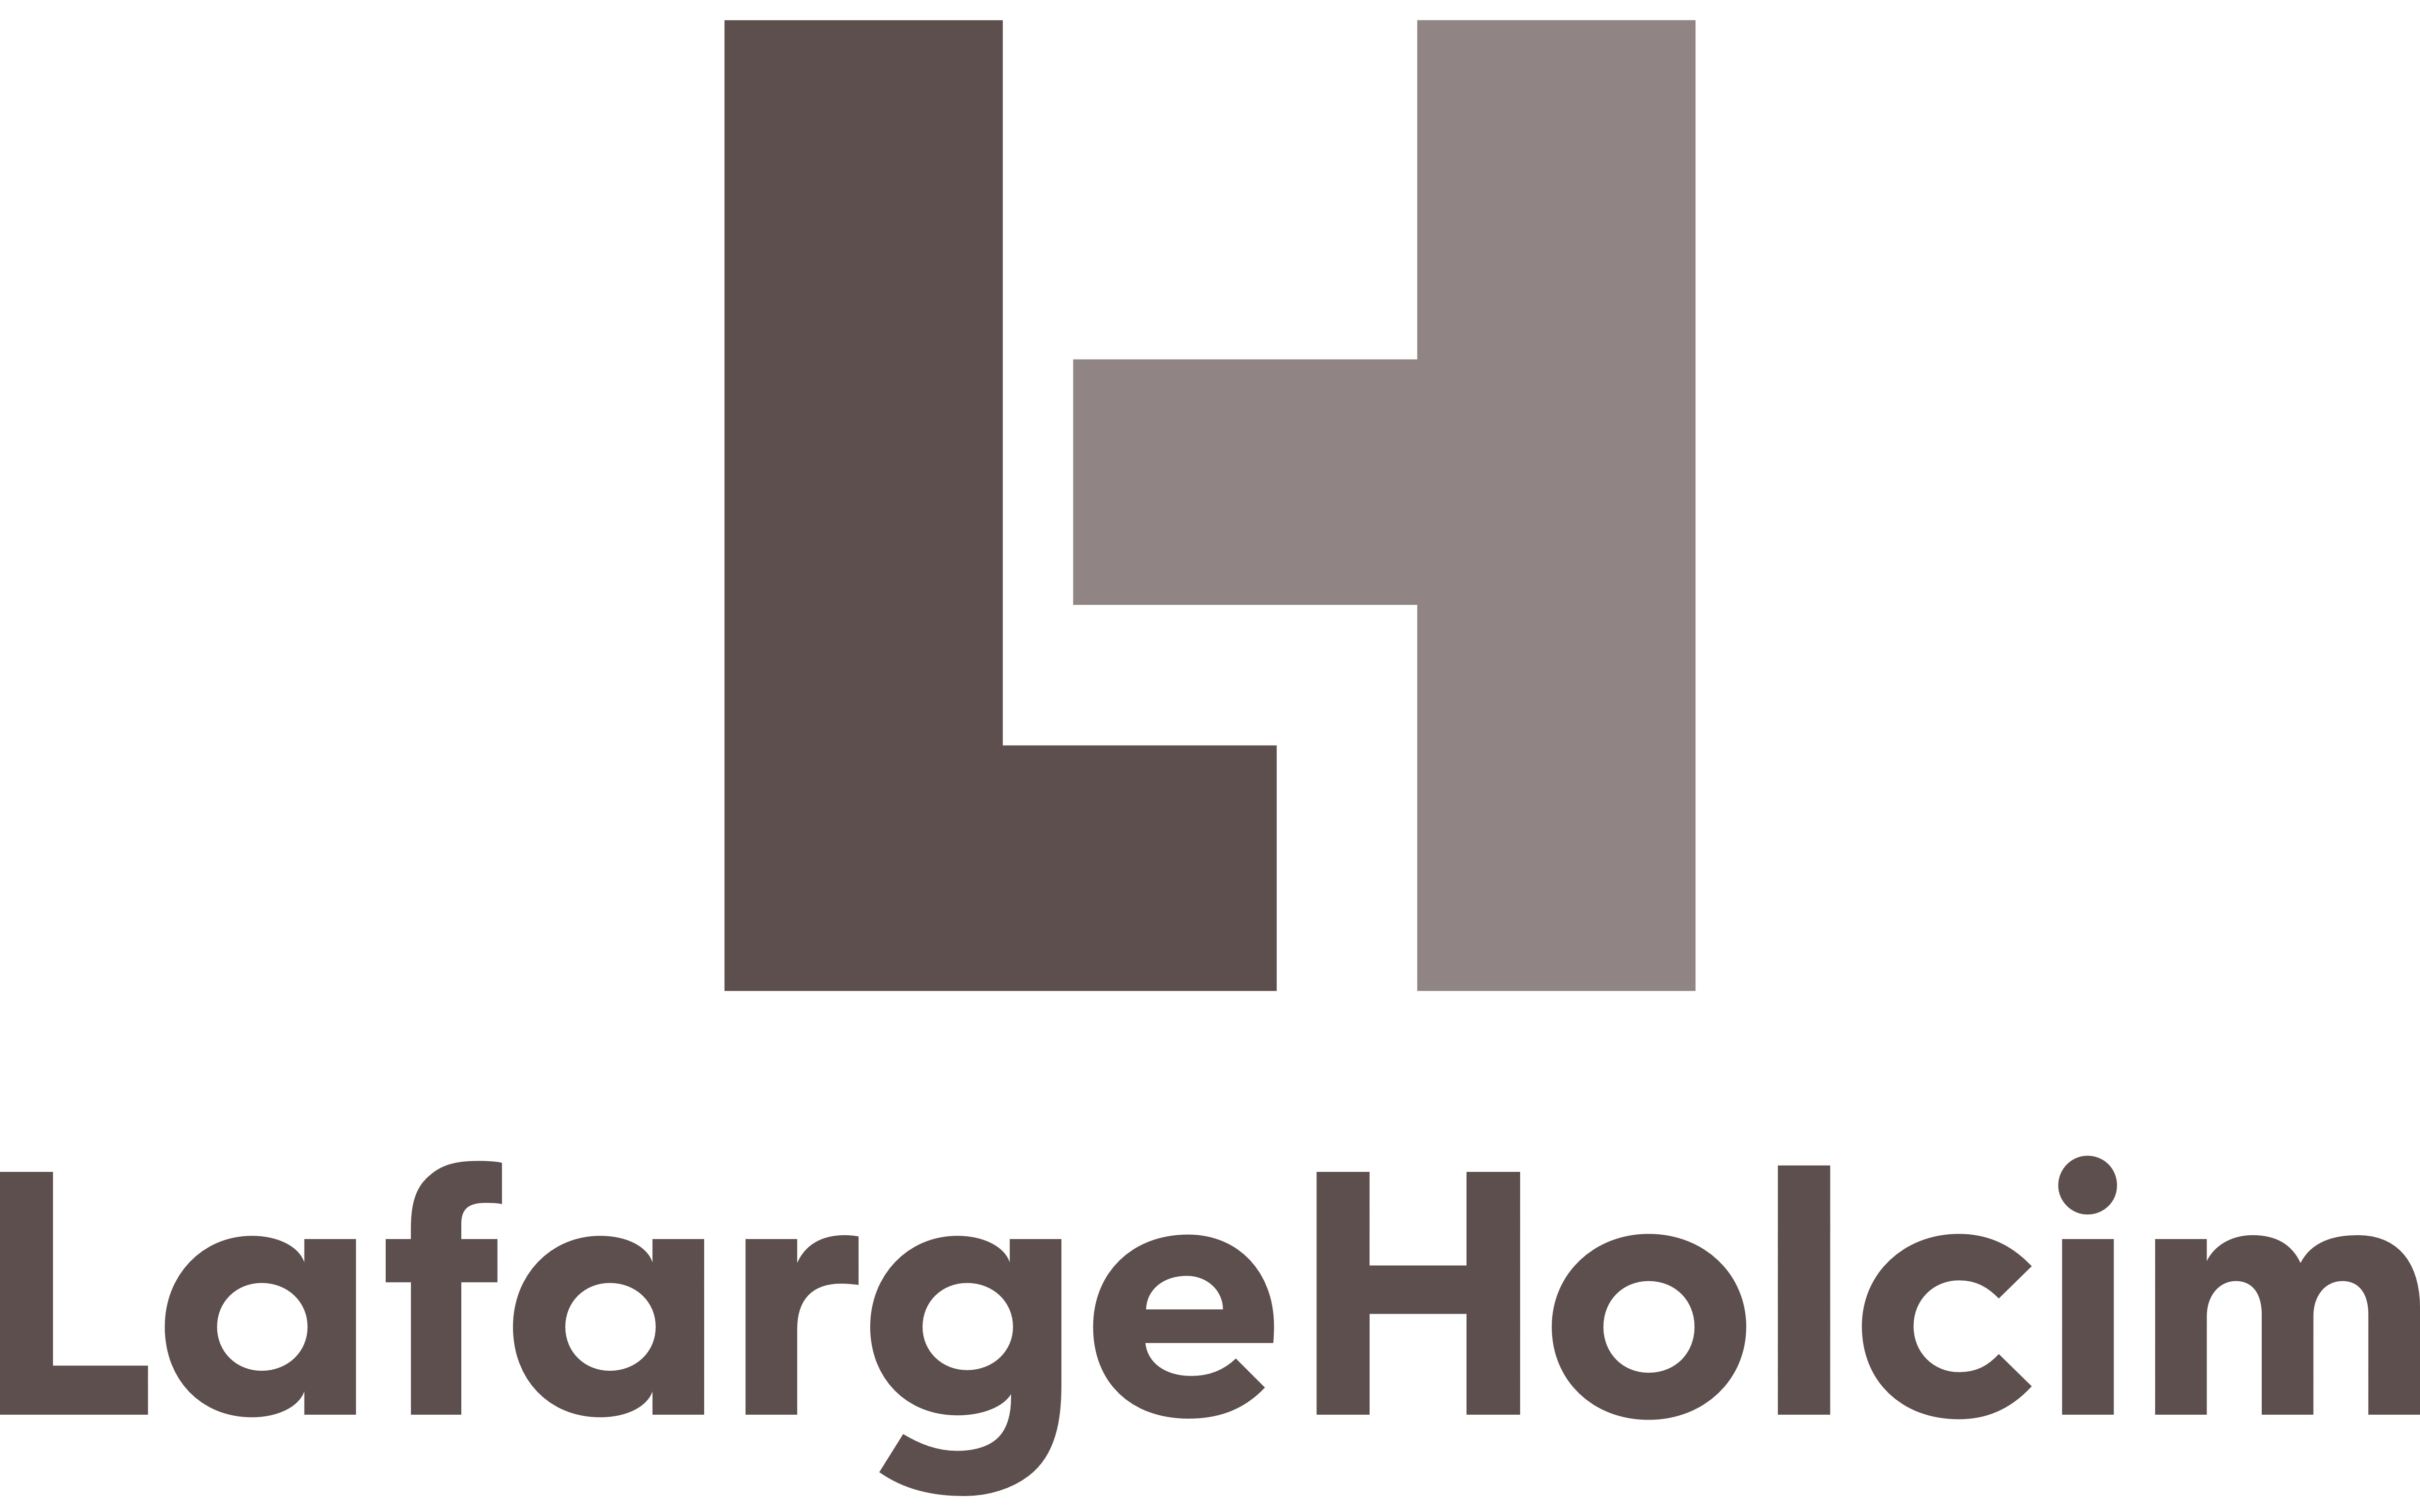 LafargeHolcim – Logos Download